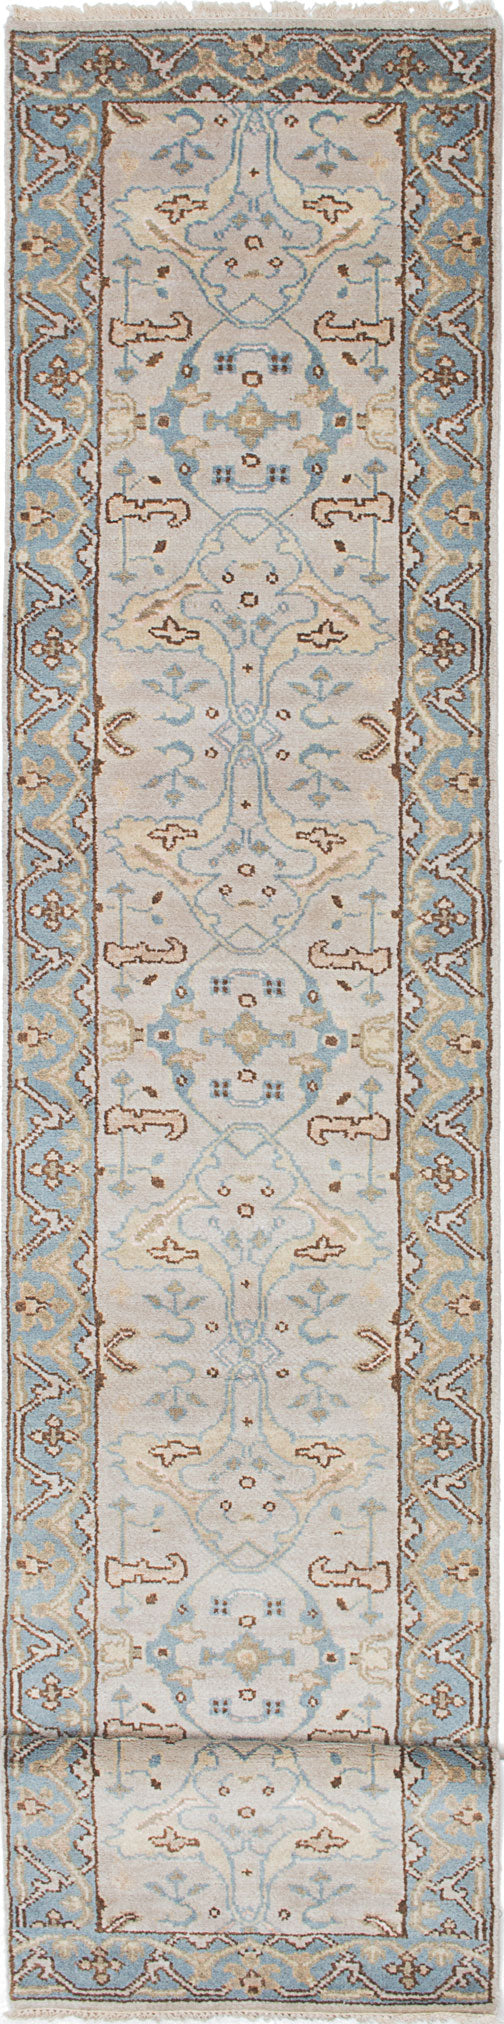 Hand-knotted Indian Floral  Traditional Royal-Ushak Runner rug  Light Blue , Light Grey 2.5 x 19.1